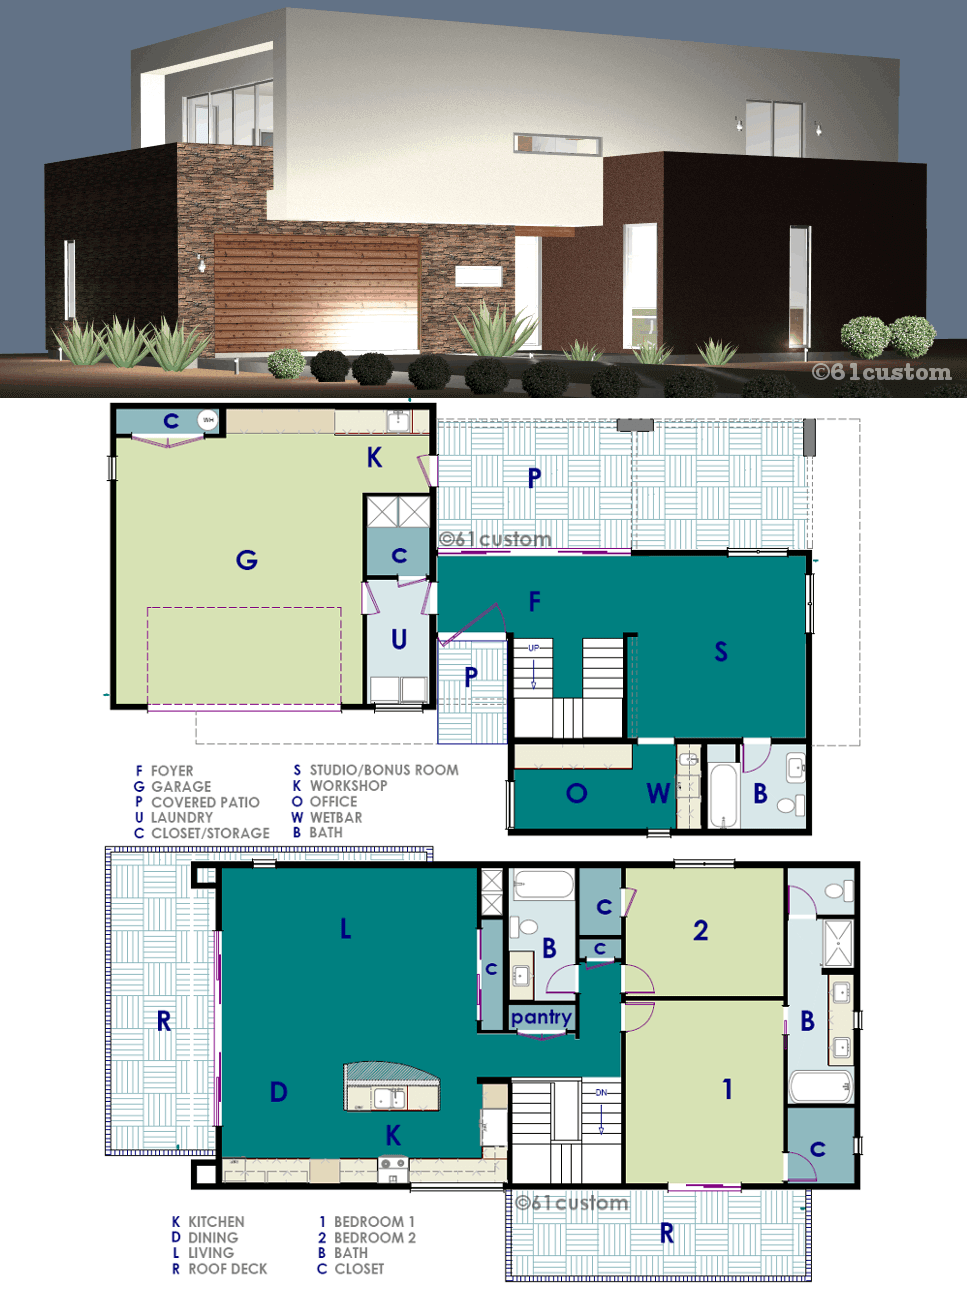 Ultra modern live work house plan 61custom for Modern house blueprints